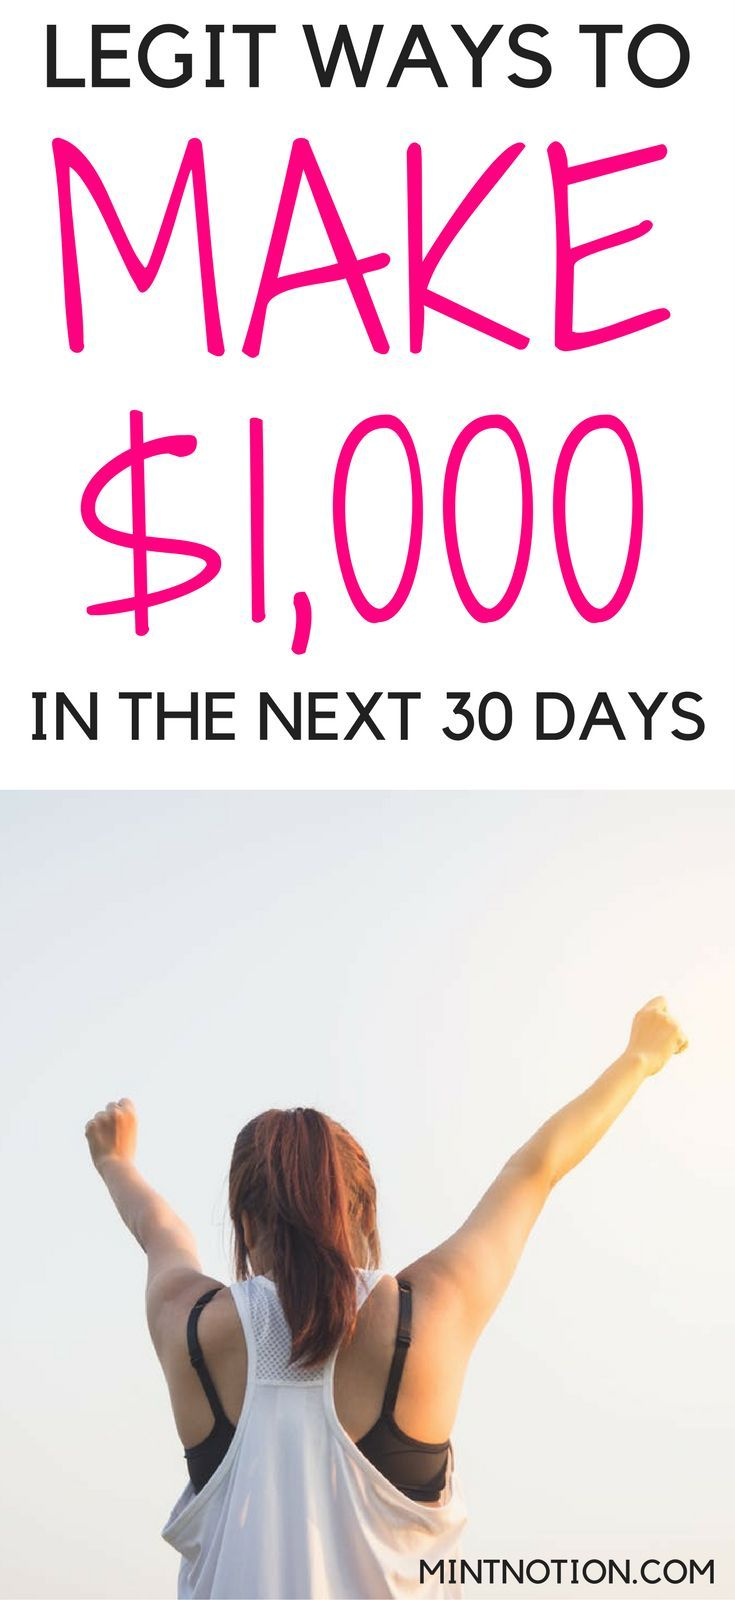 Want to make extra money fast? Check out these awesome ways make money now | Make money from home | Earn extra income | Make money online